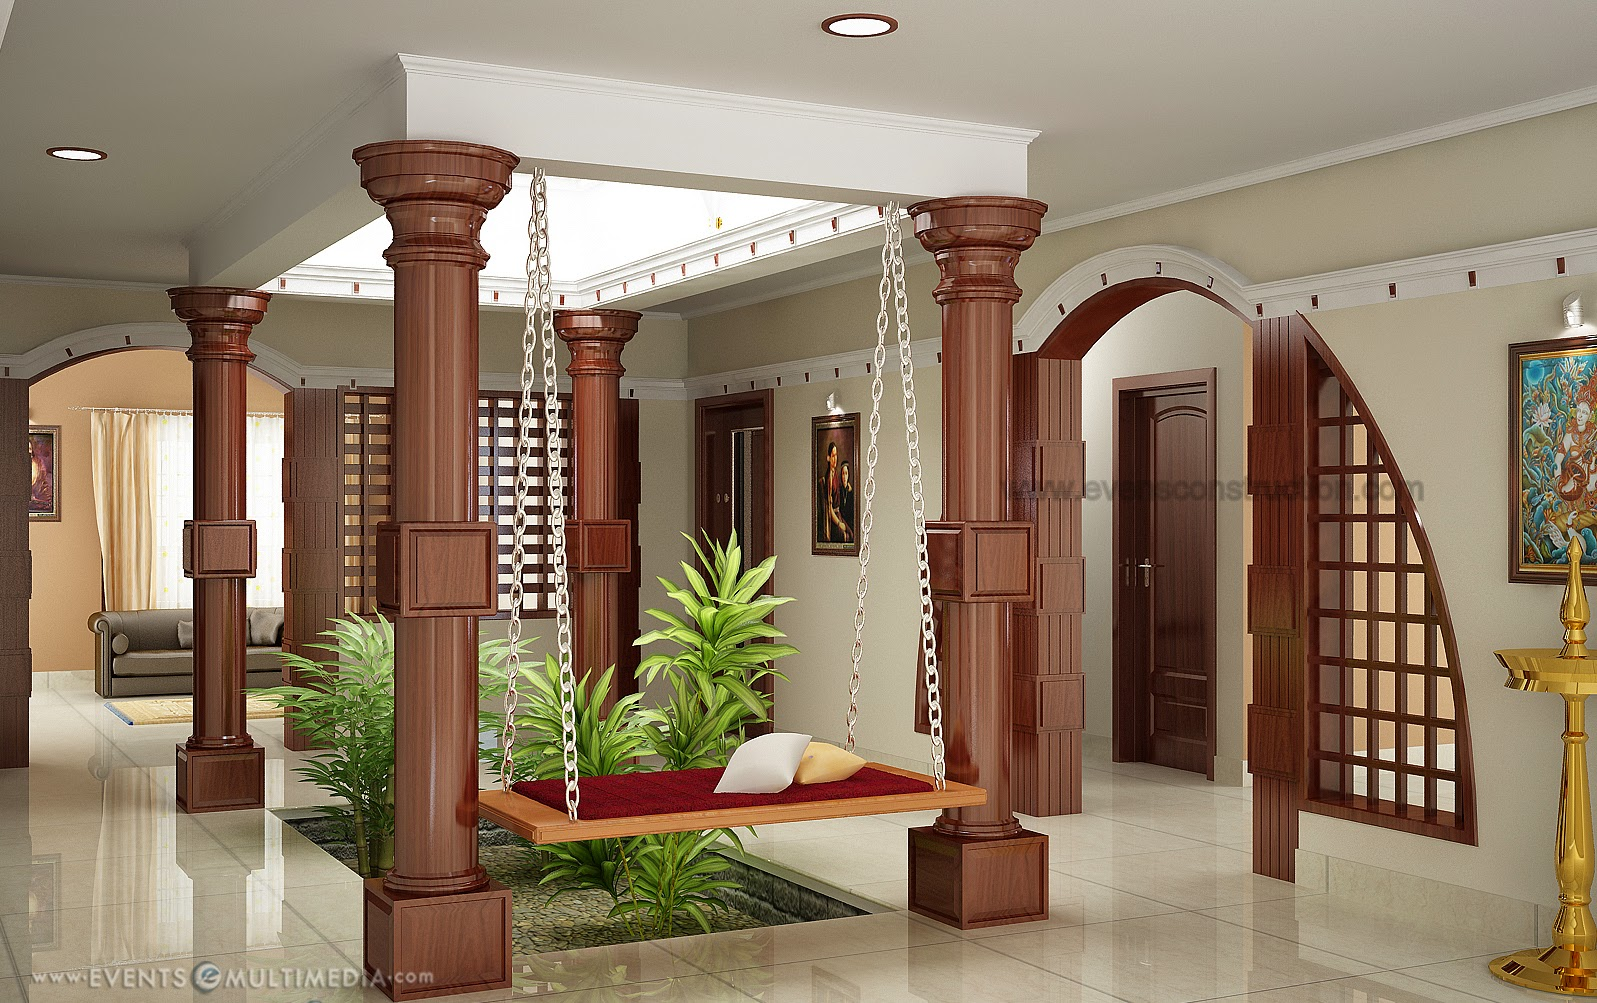 Courtyard for kerala house home Indoor courtyard house plans